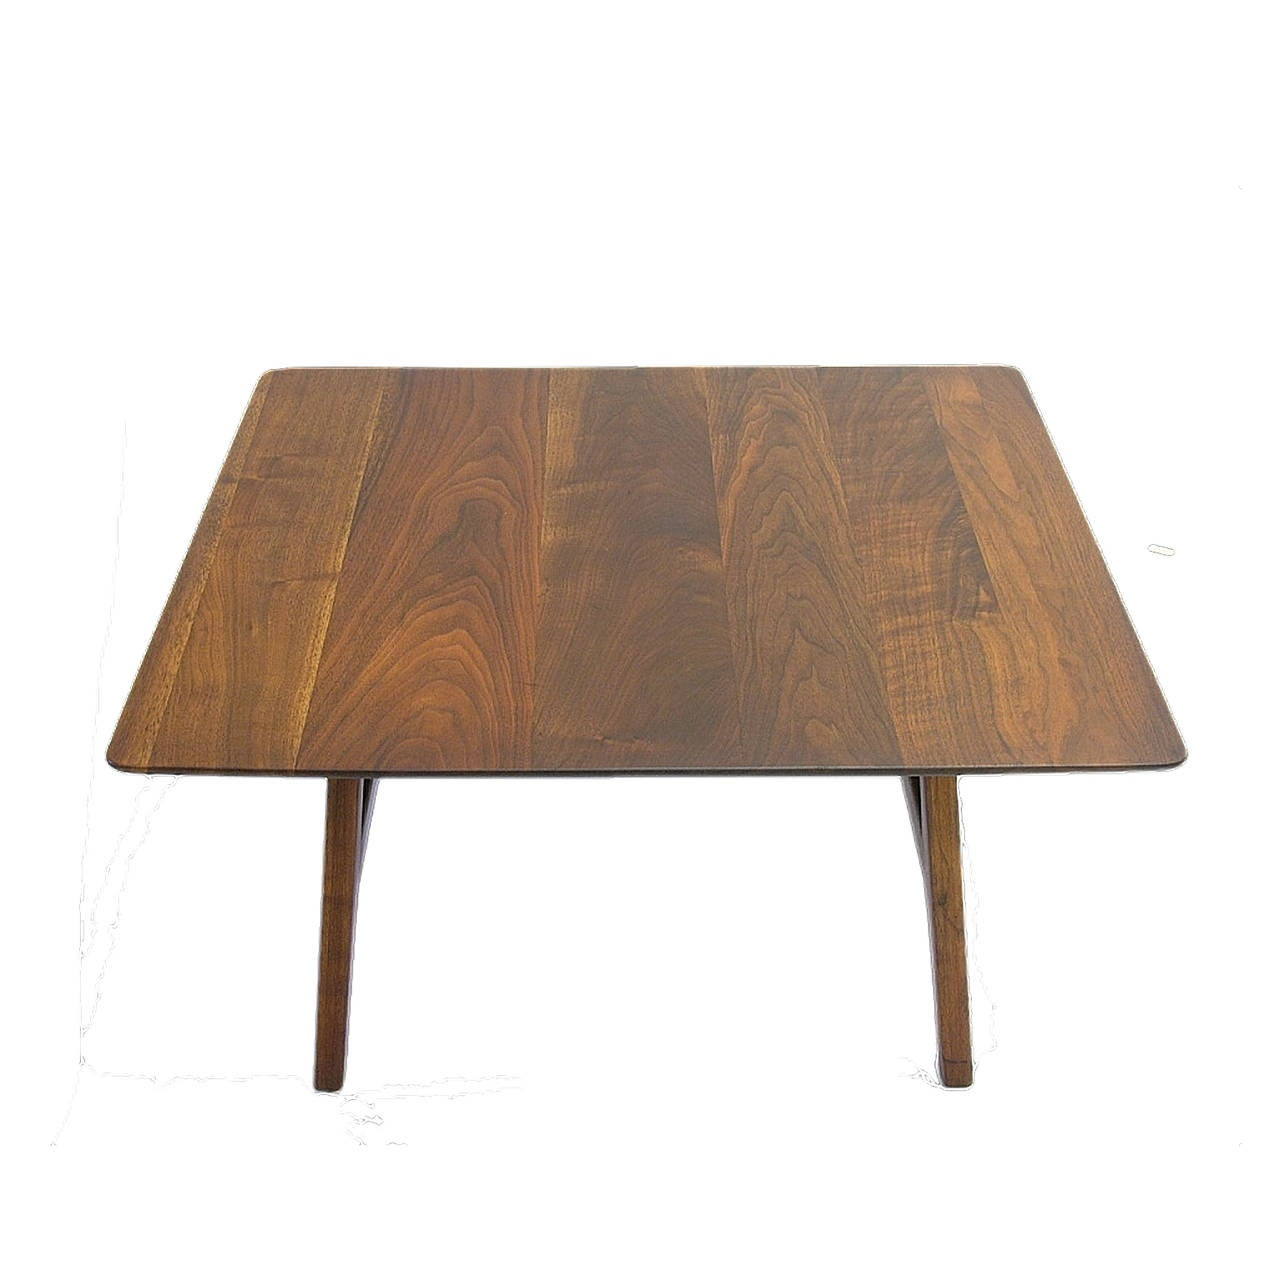 This Jens Risom Walnut Coffee Table Is No Longer Available